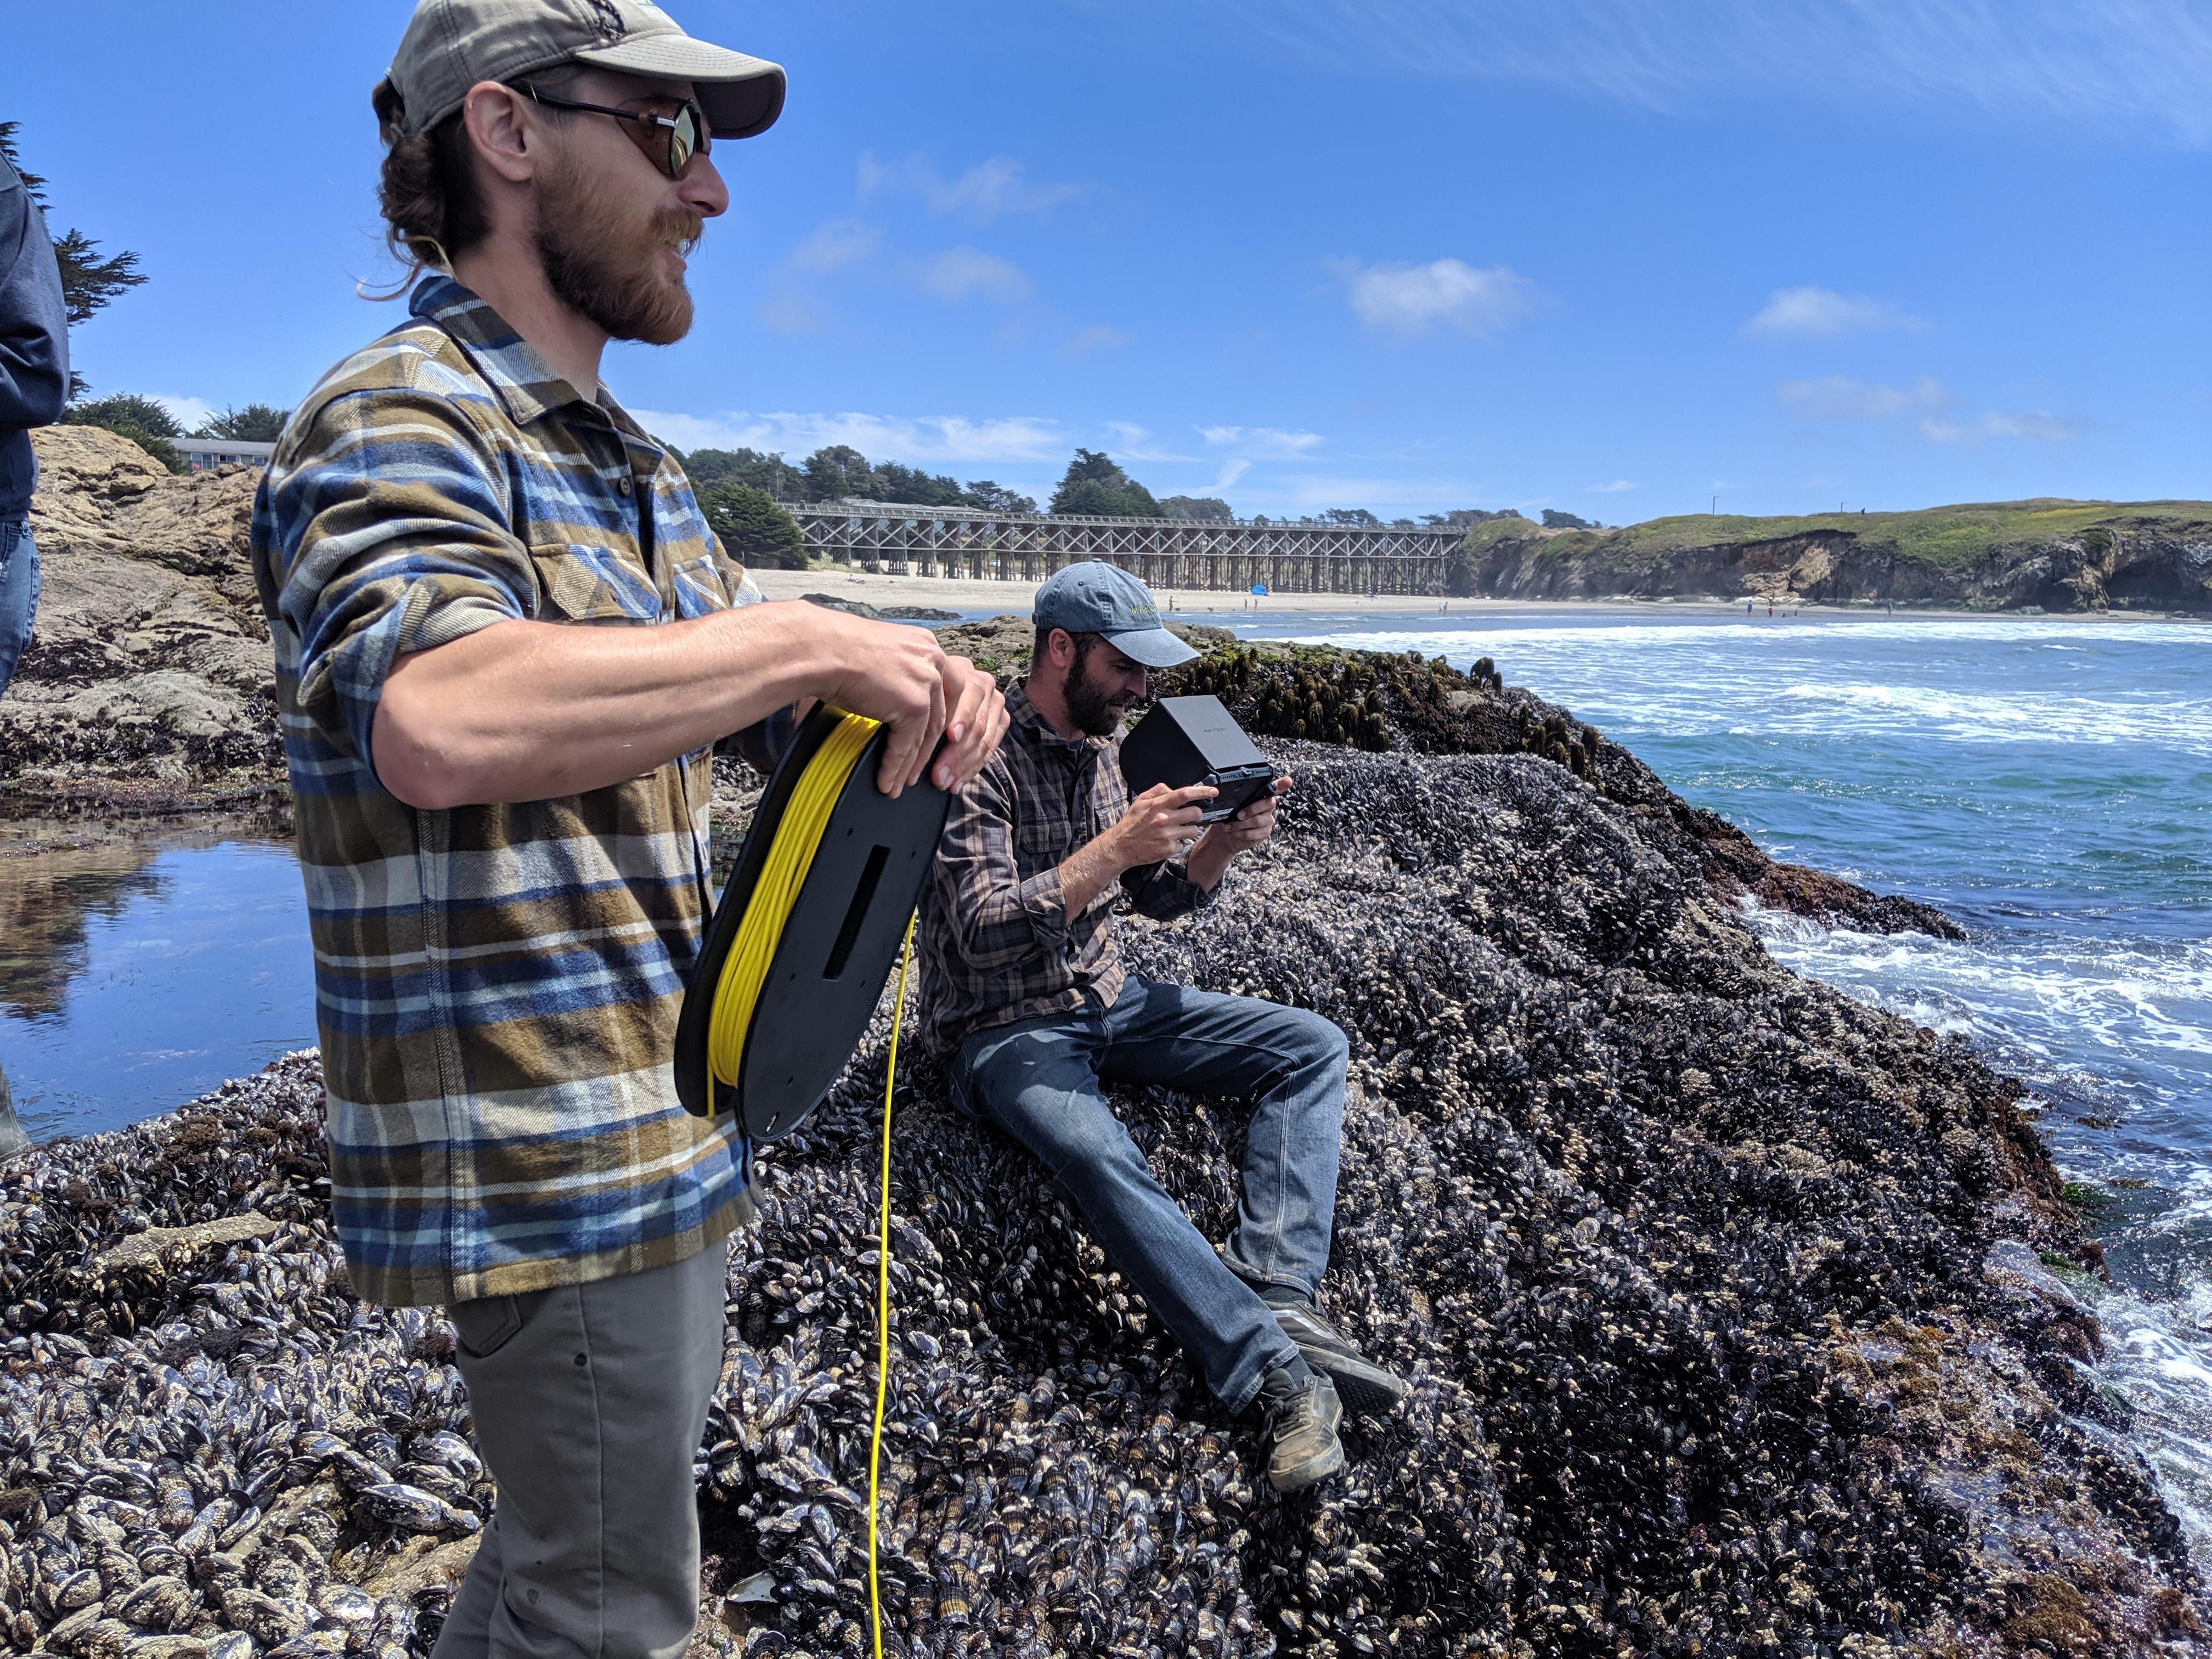 California Sea Grant state fellow Pike Spector and a member of the Mendocino MPA Collaborative put an ROV to work by testing it in typical north coast conditions. Photo credit: Z. Johnson